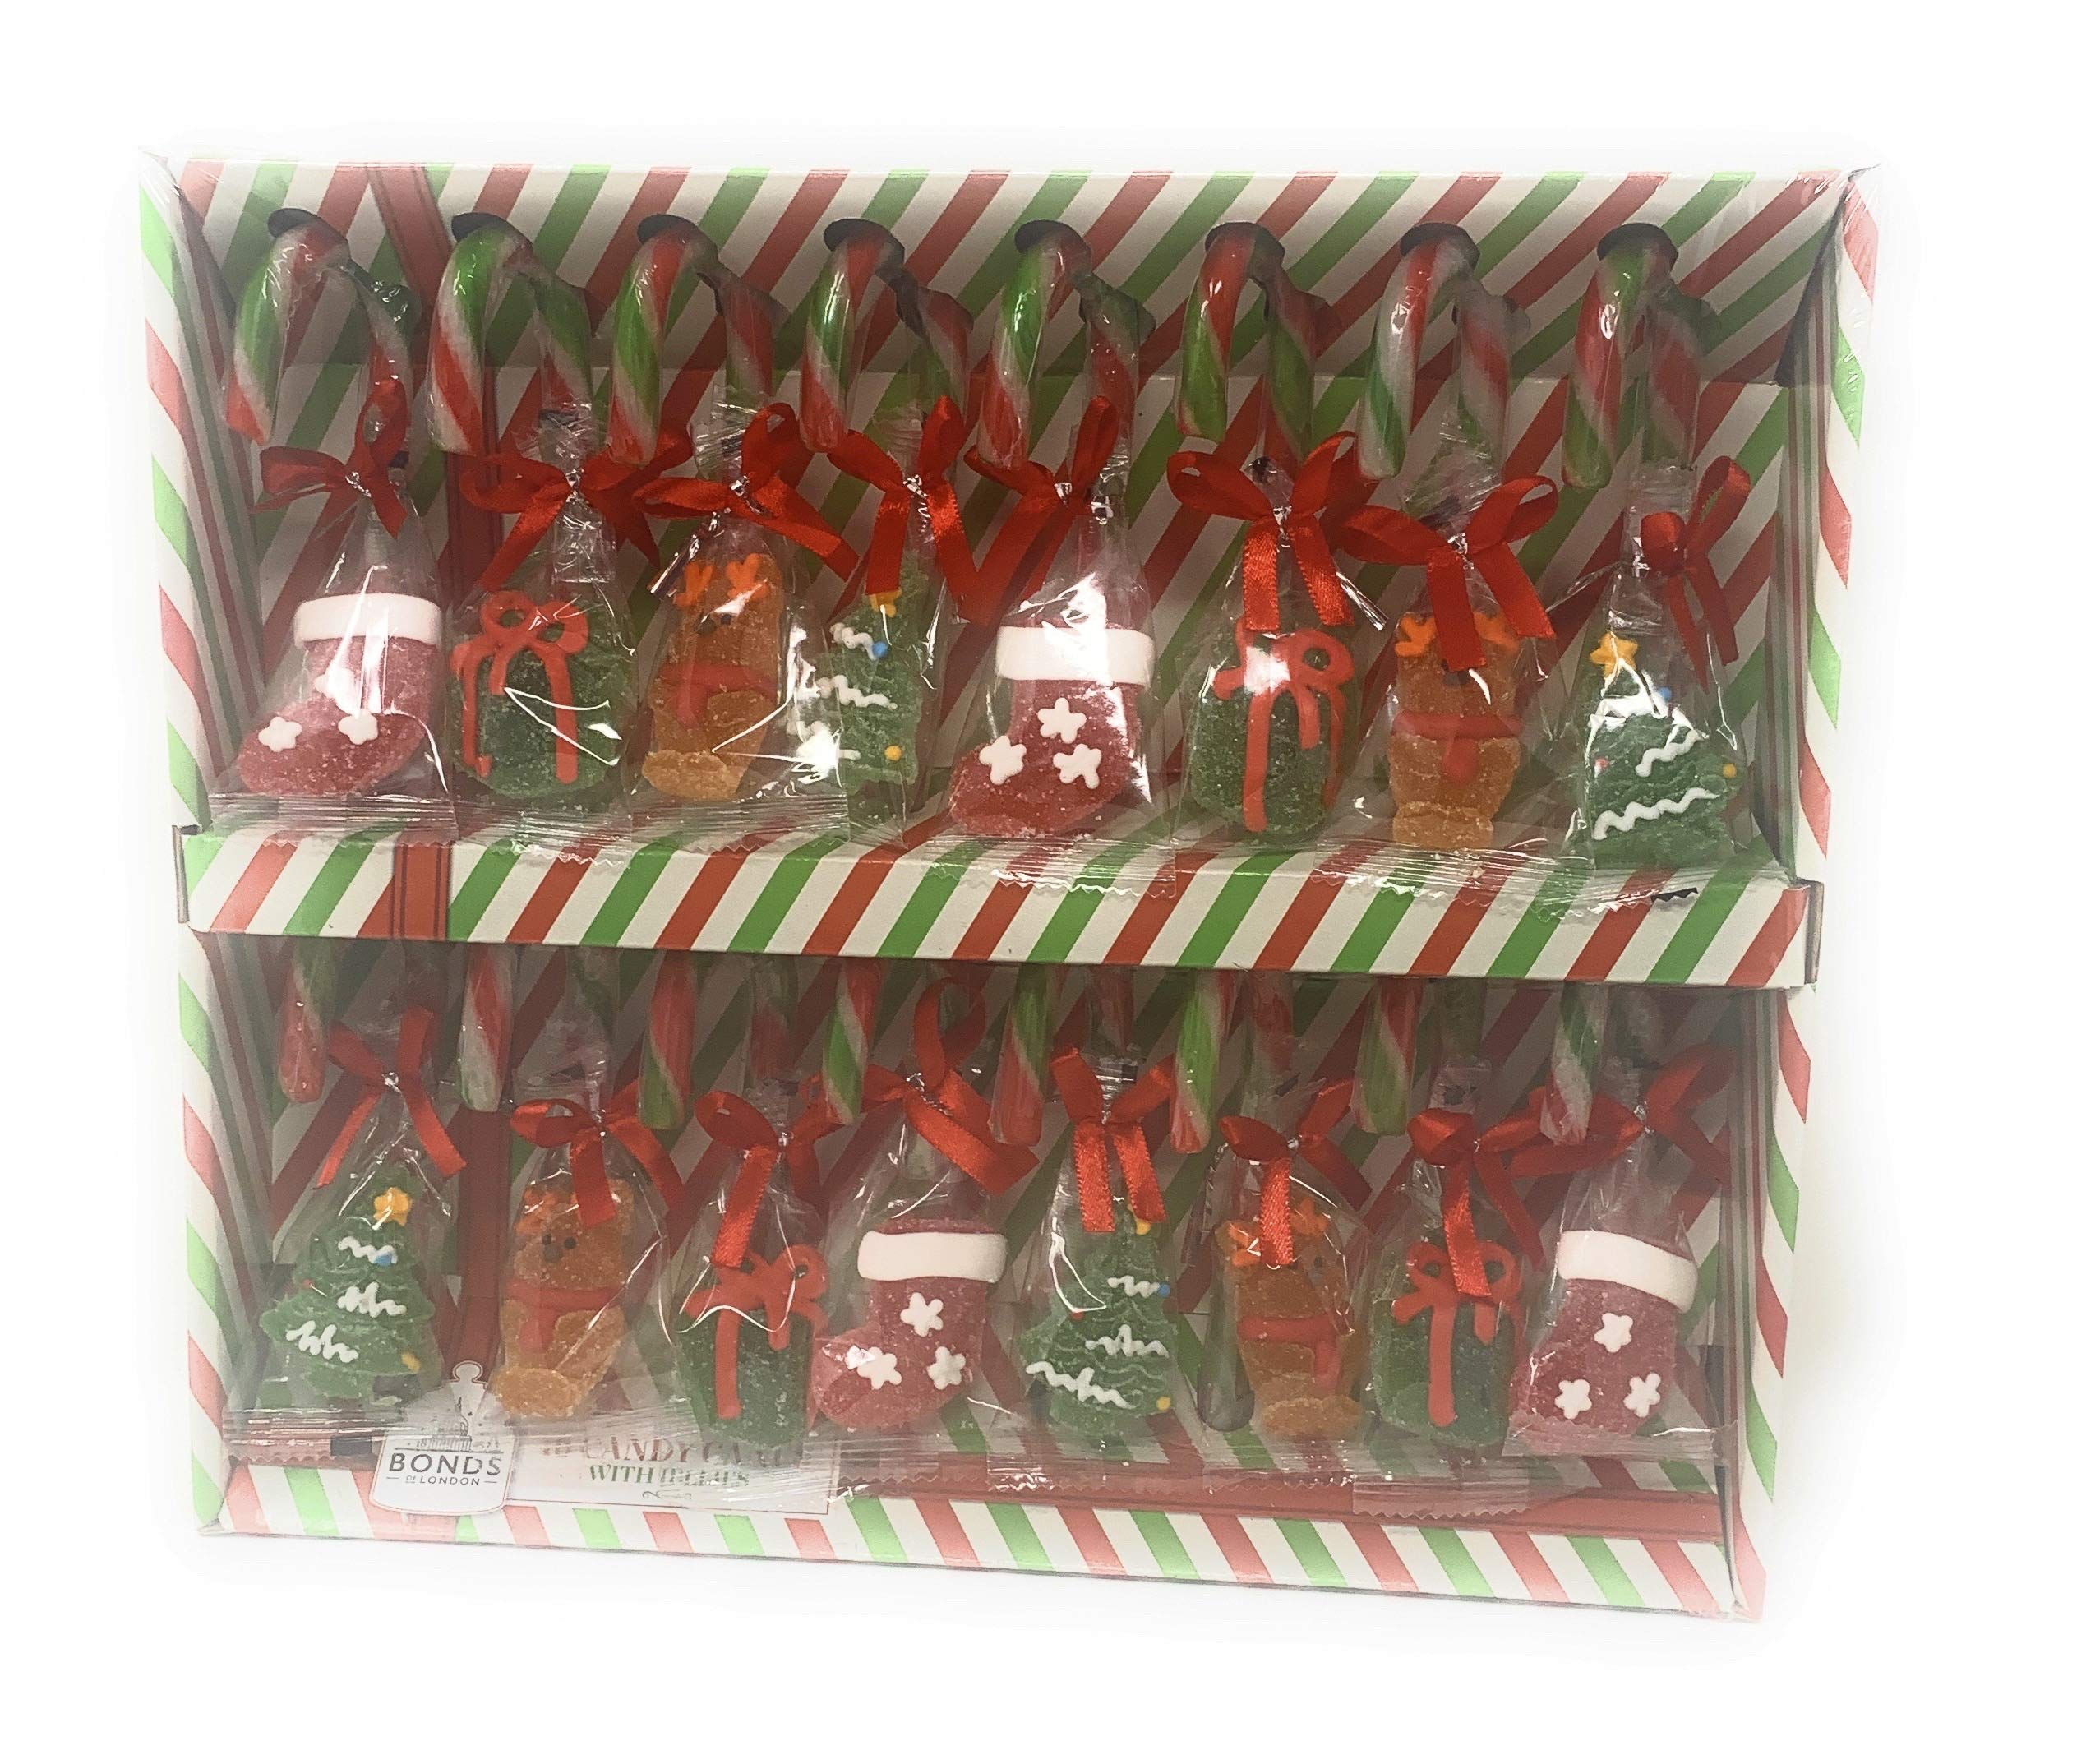 16 Peppermint Candy Canes with Jelly Figures Christmas Tree Decorations Bonds of London 352g